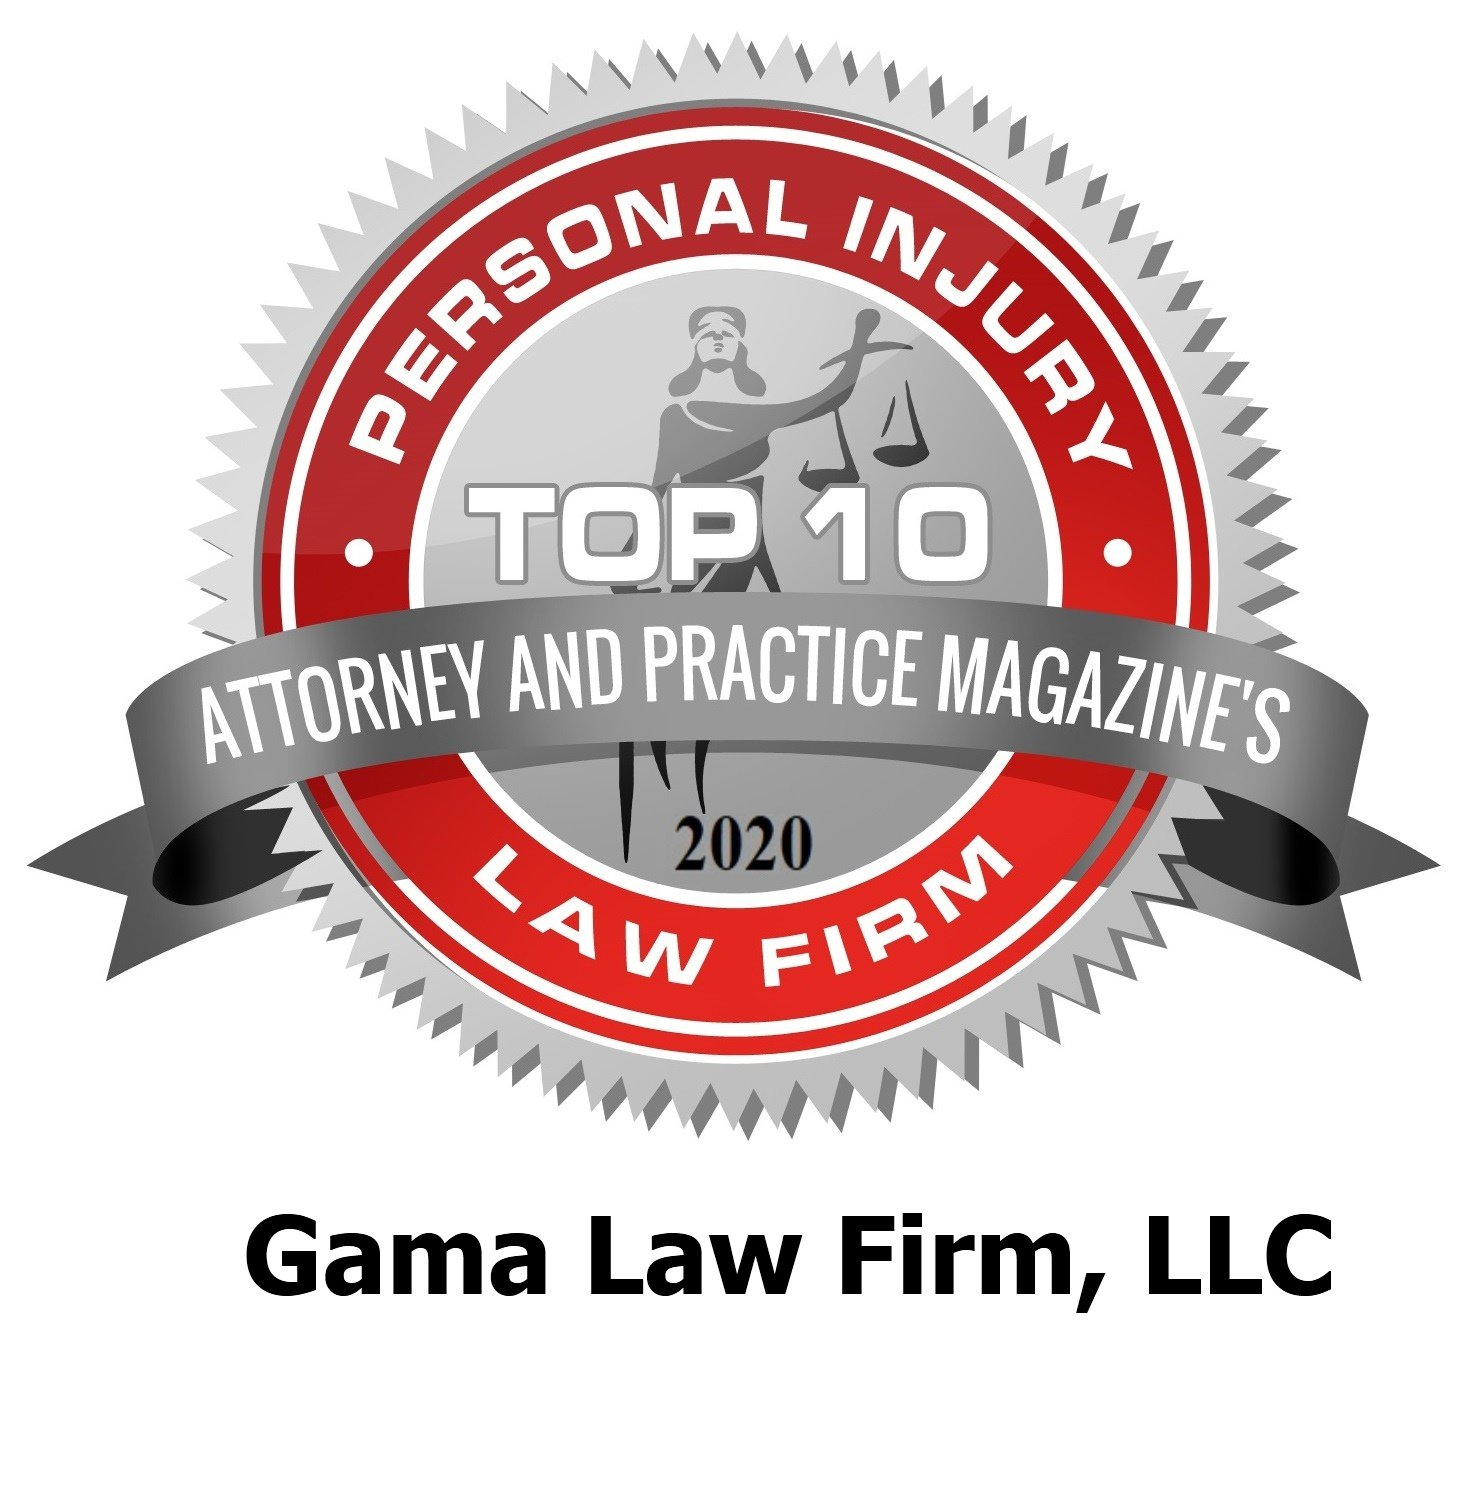 2020 Personal Injury Law Firm Top 10 badge for Gama Law Firm, LLC